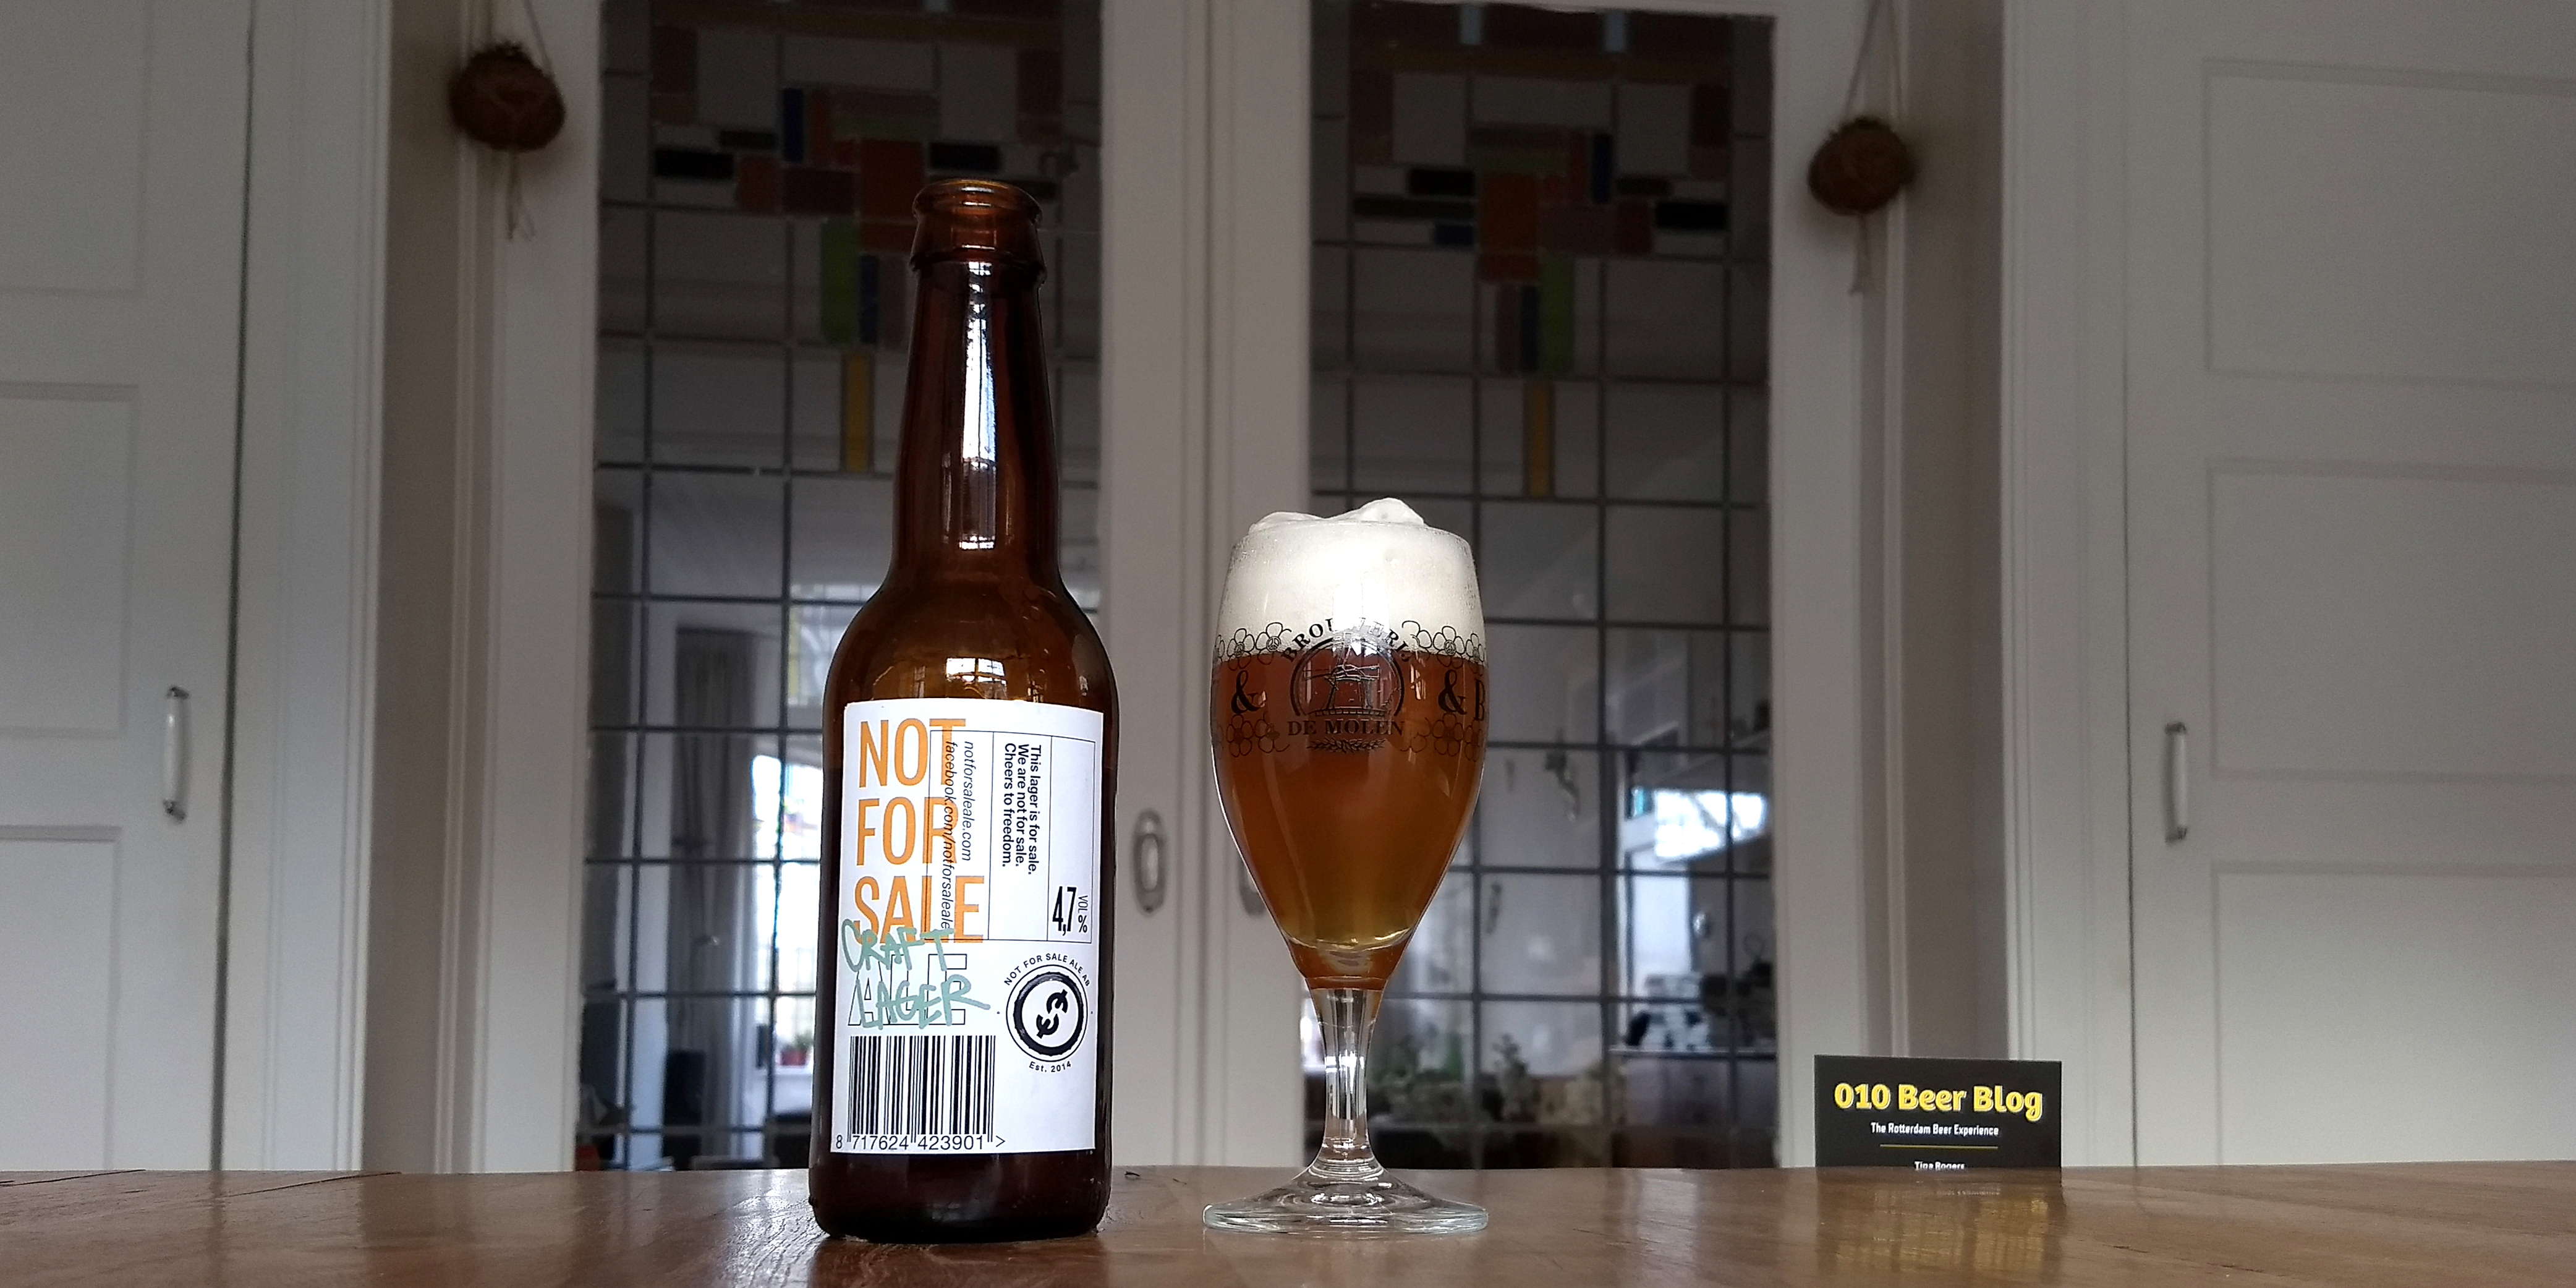 Not for Sale Craft Lager Brouwerij de Molen